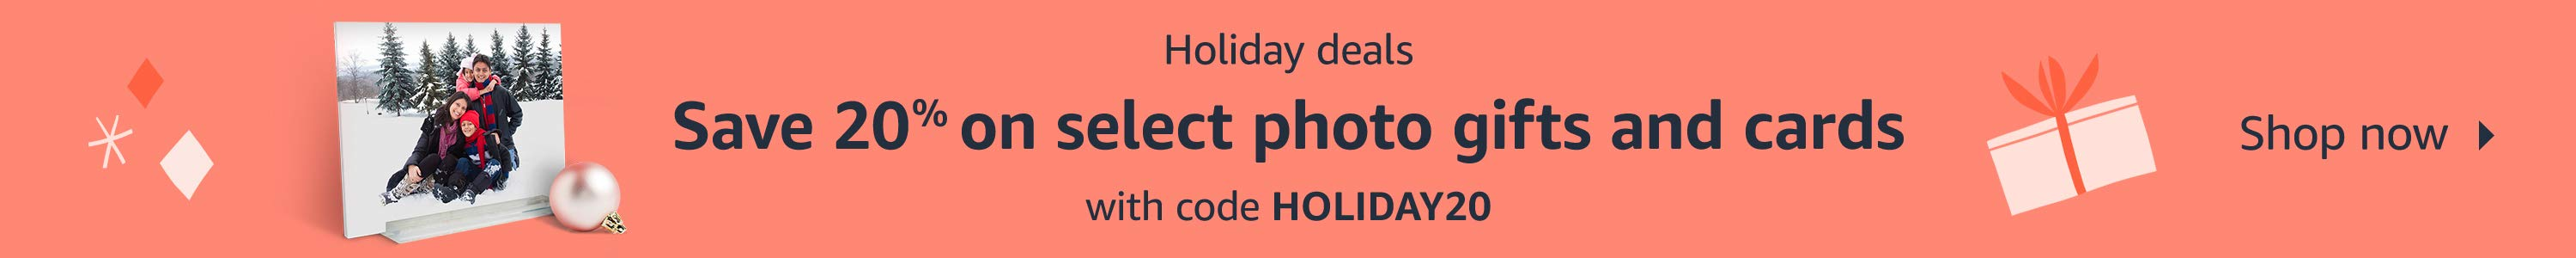 Save 20% on select photo gifts and cards